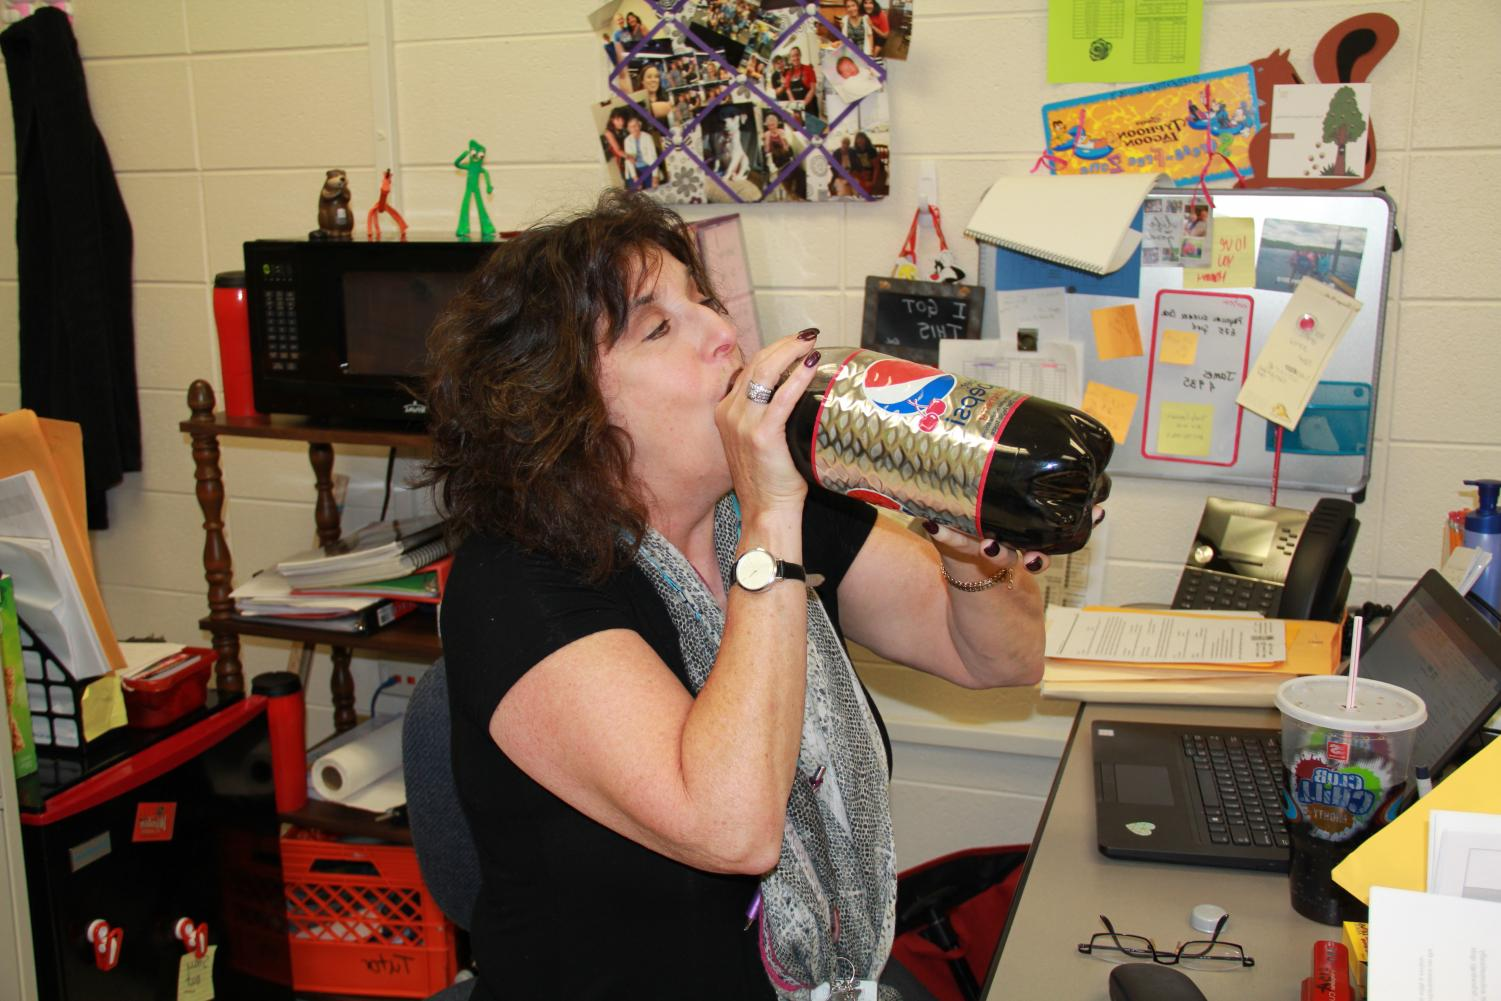 Elisabeth Siedentop-Wing, special education teacher, shows off her favorite Pepsi product: Diet Pepsi cherry. Siedentop_Wing says Pepsi breaks are her happy place during the sometimes stressful school days.